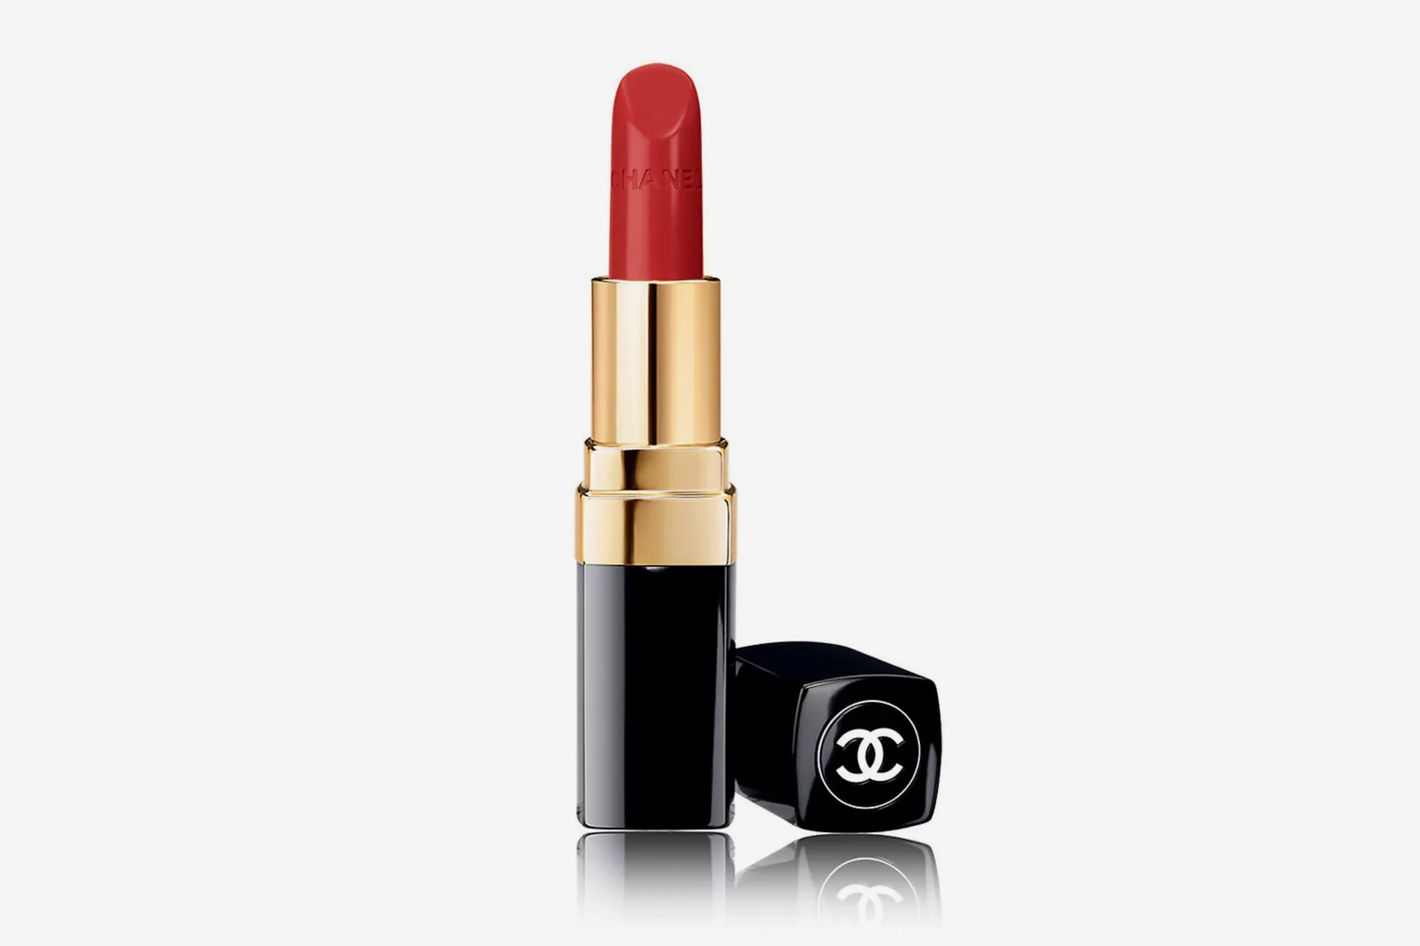 Chanel Rouge Coco Ultra Hydrating Lip Color in Gabrielle